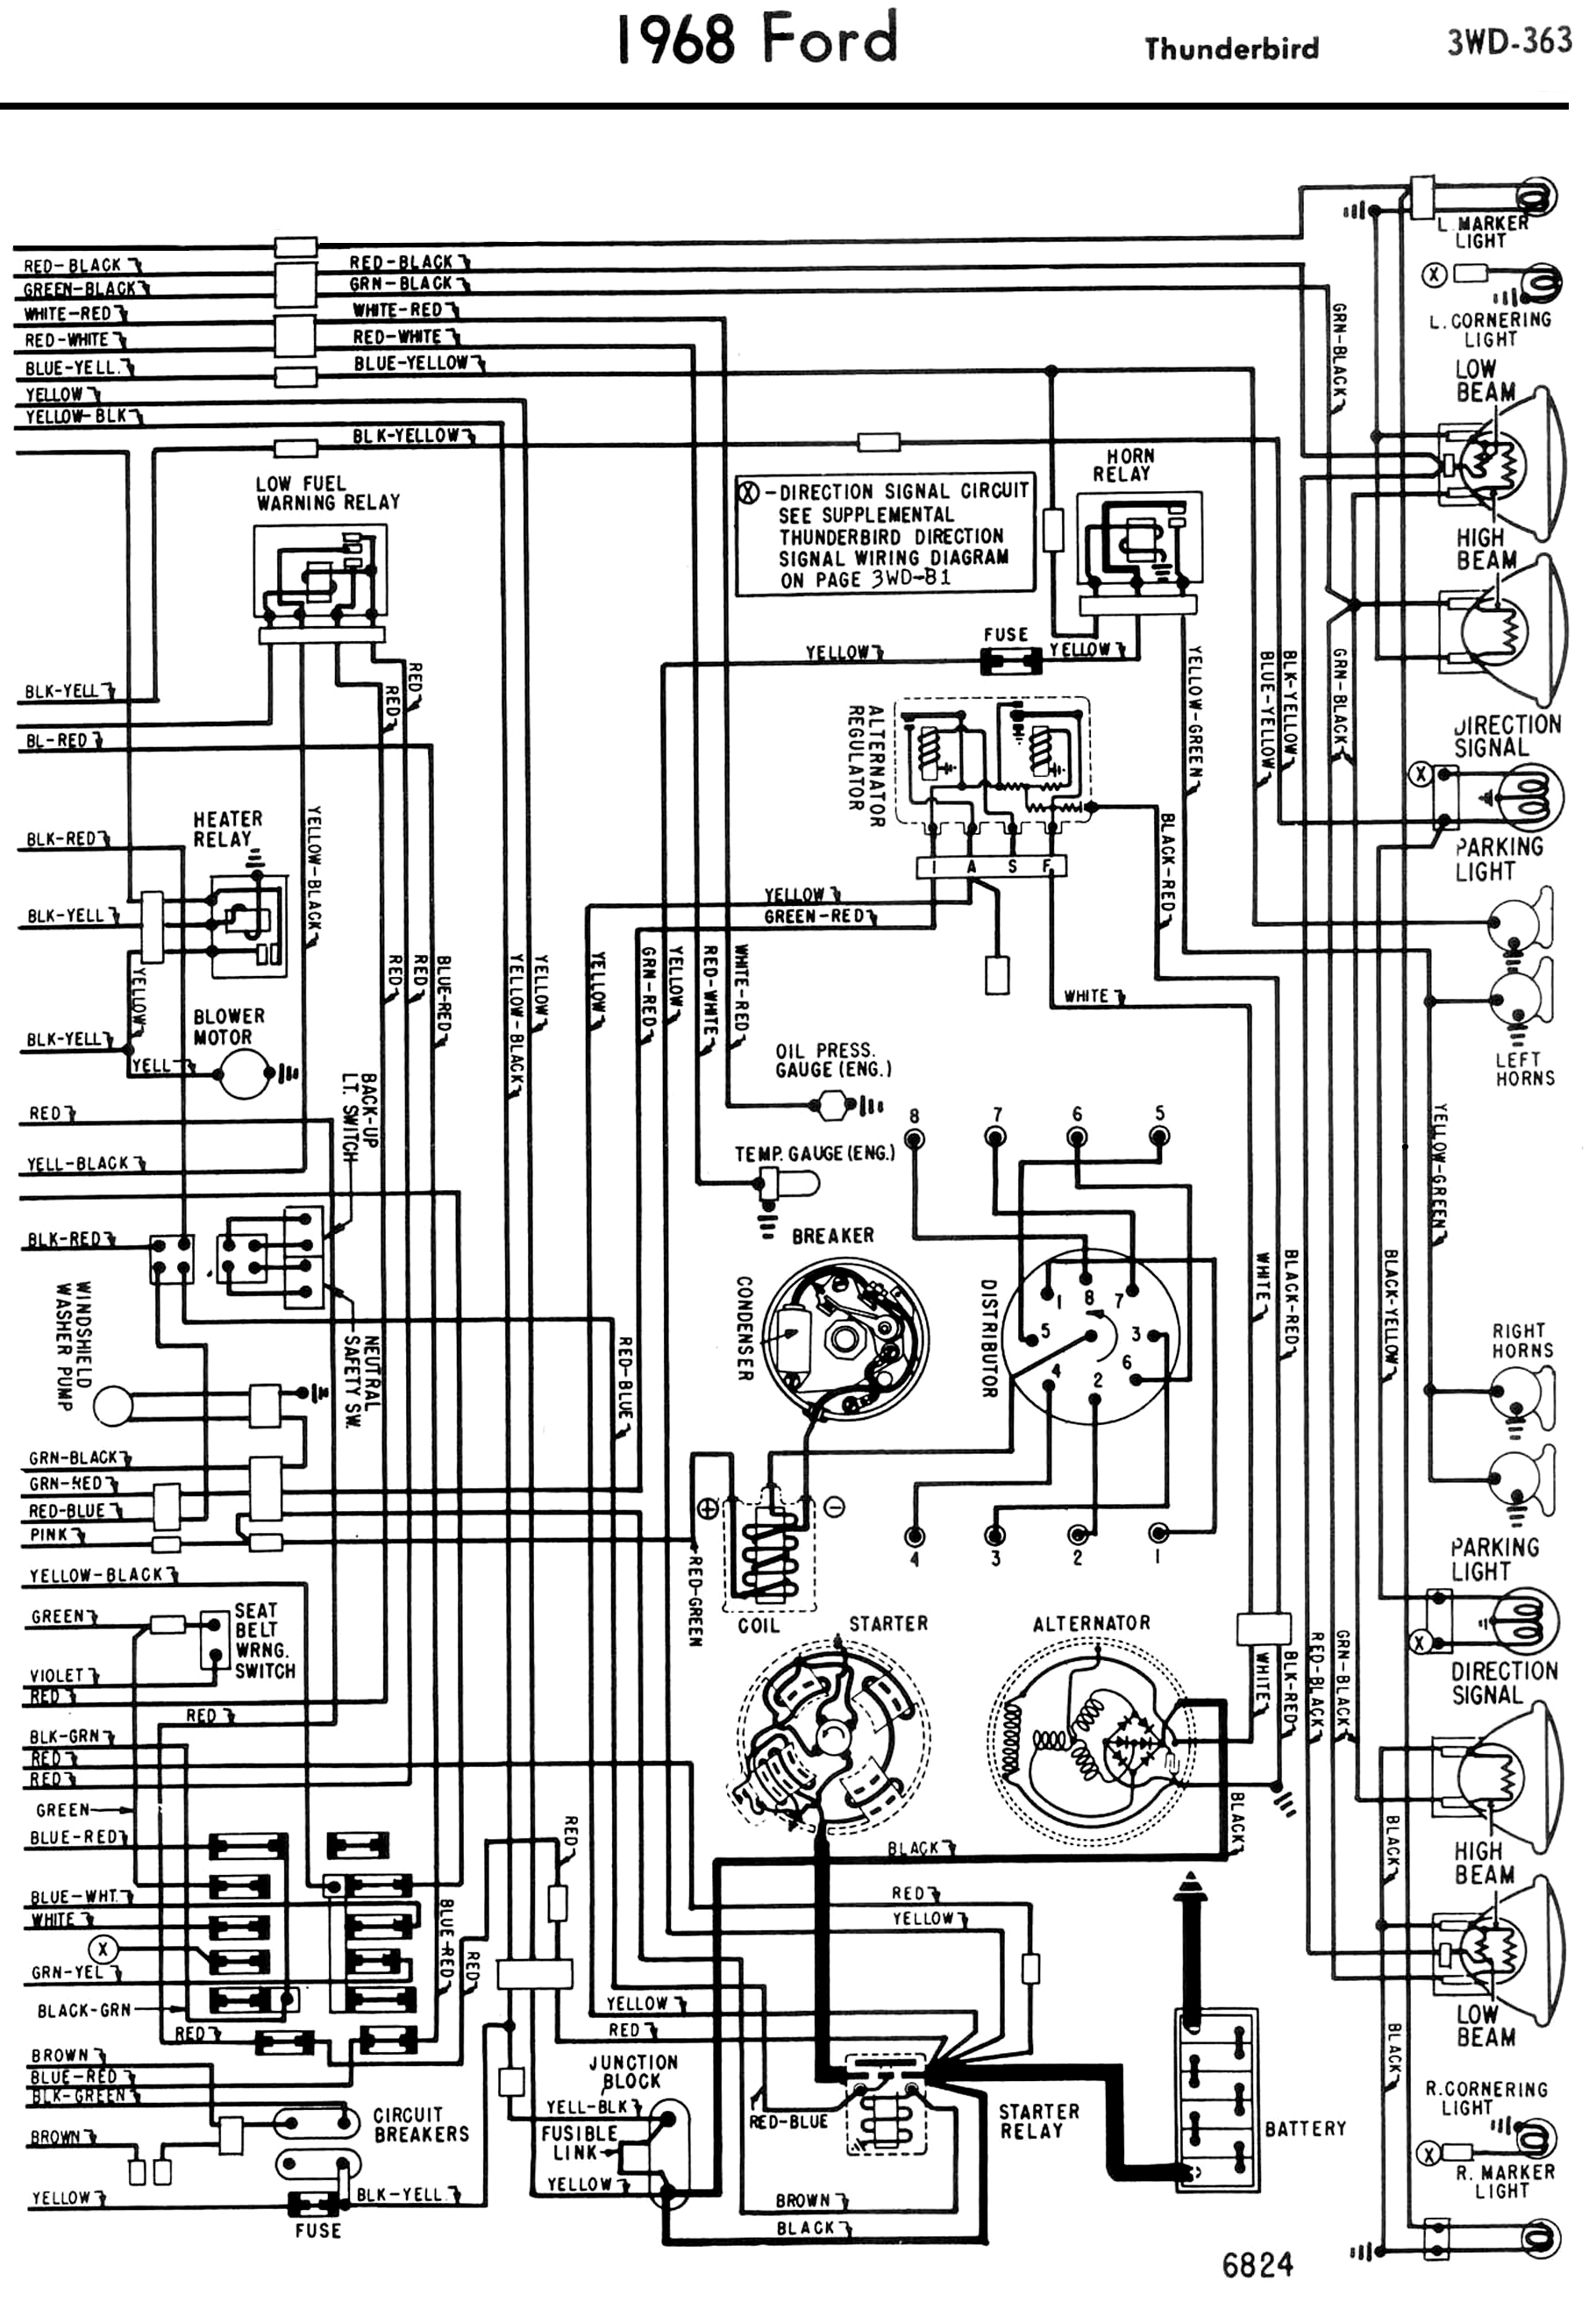 68 Chevy Malibu Wiring Diagram | Wiring Diagram on 1966 chevelle wiring schematic, 1970 chevelle starter wiring diagram, 2010 camaro starter wiring diagram, 1964 chevelle starter wiring diagram, 1969 chevelle starter wiring diagram, 1971 chevelle starter wiring diagram, 1972 chevelle starter wiring diagram, 1967 chevelle starter wiring diagram, 1965 chevelle starter wiring diagram, 1972 camaro starter wiring diagram,